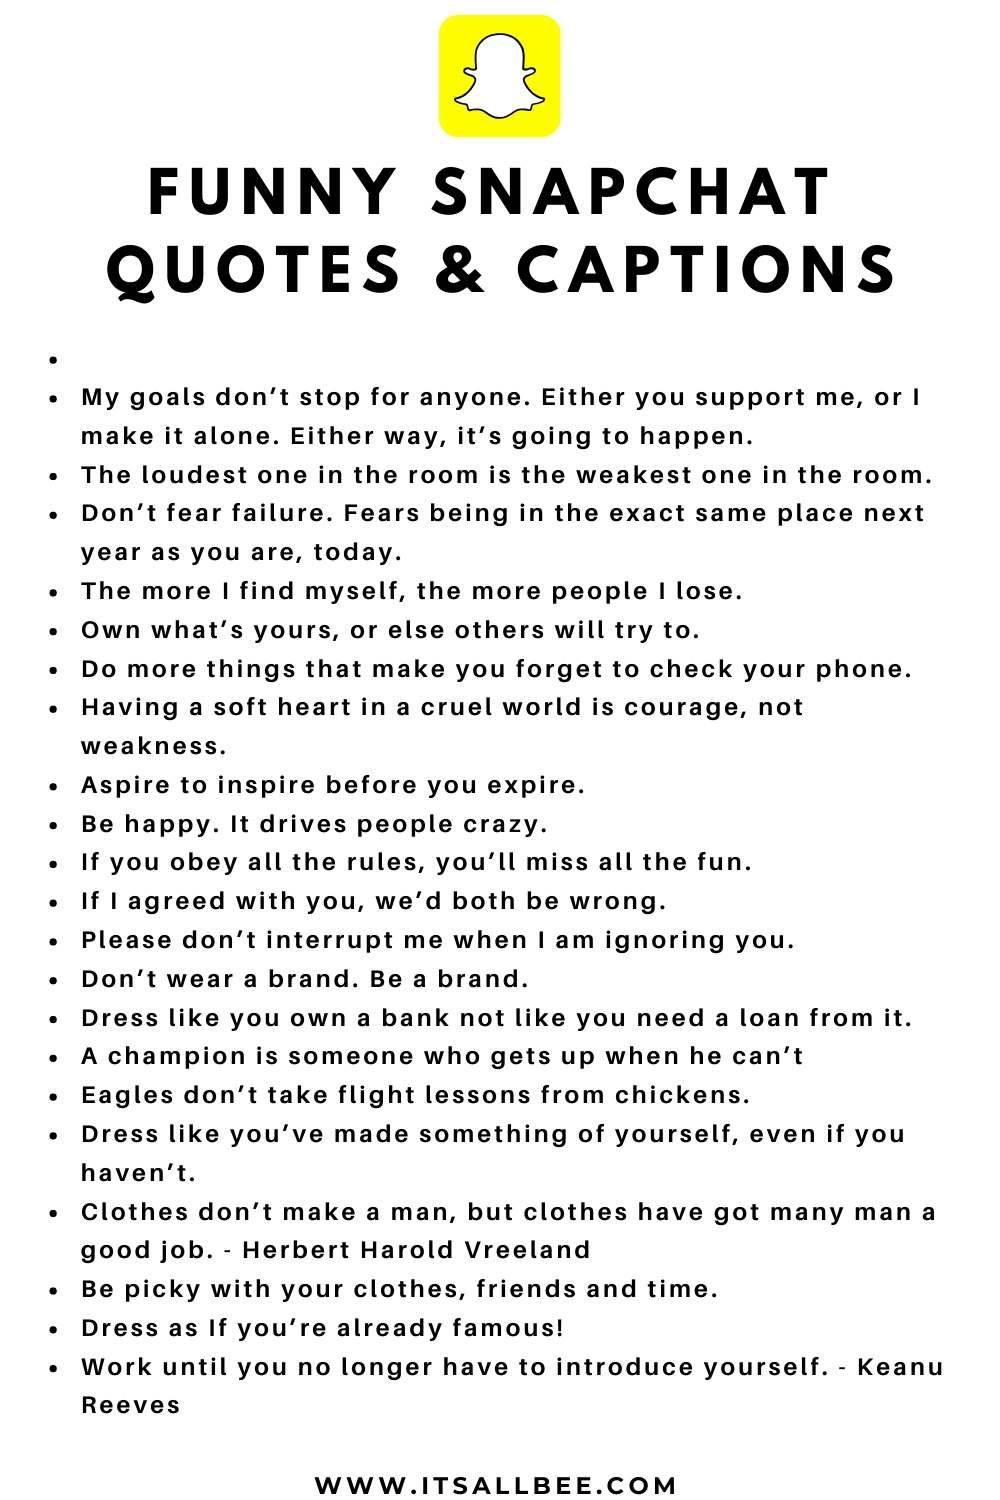 Cool Snapchat Quotes Captions Itsallbee Solo Travel Adventure Tips Snapchat Quotes Snap Quotes Selfie Quotes